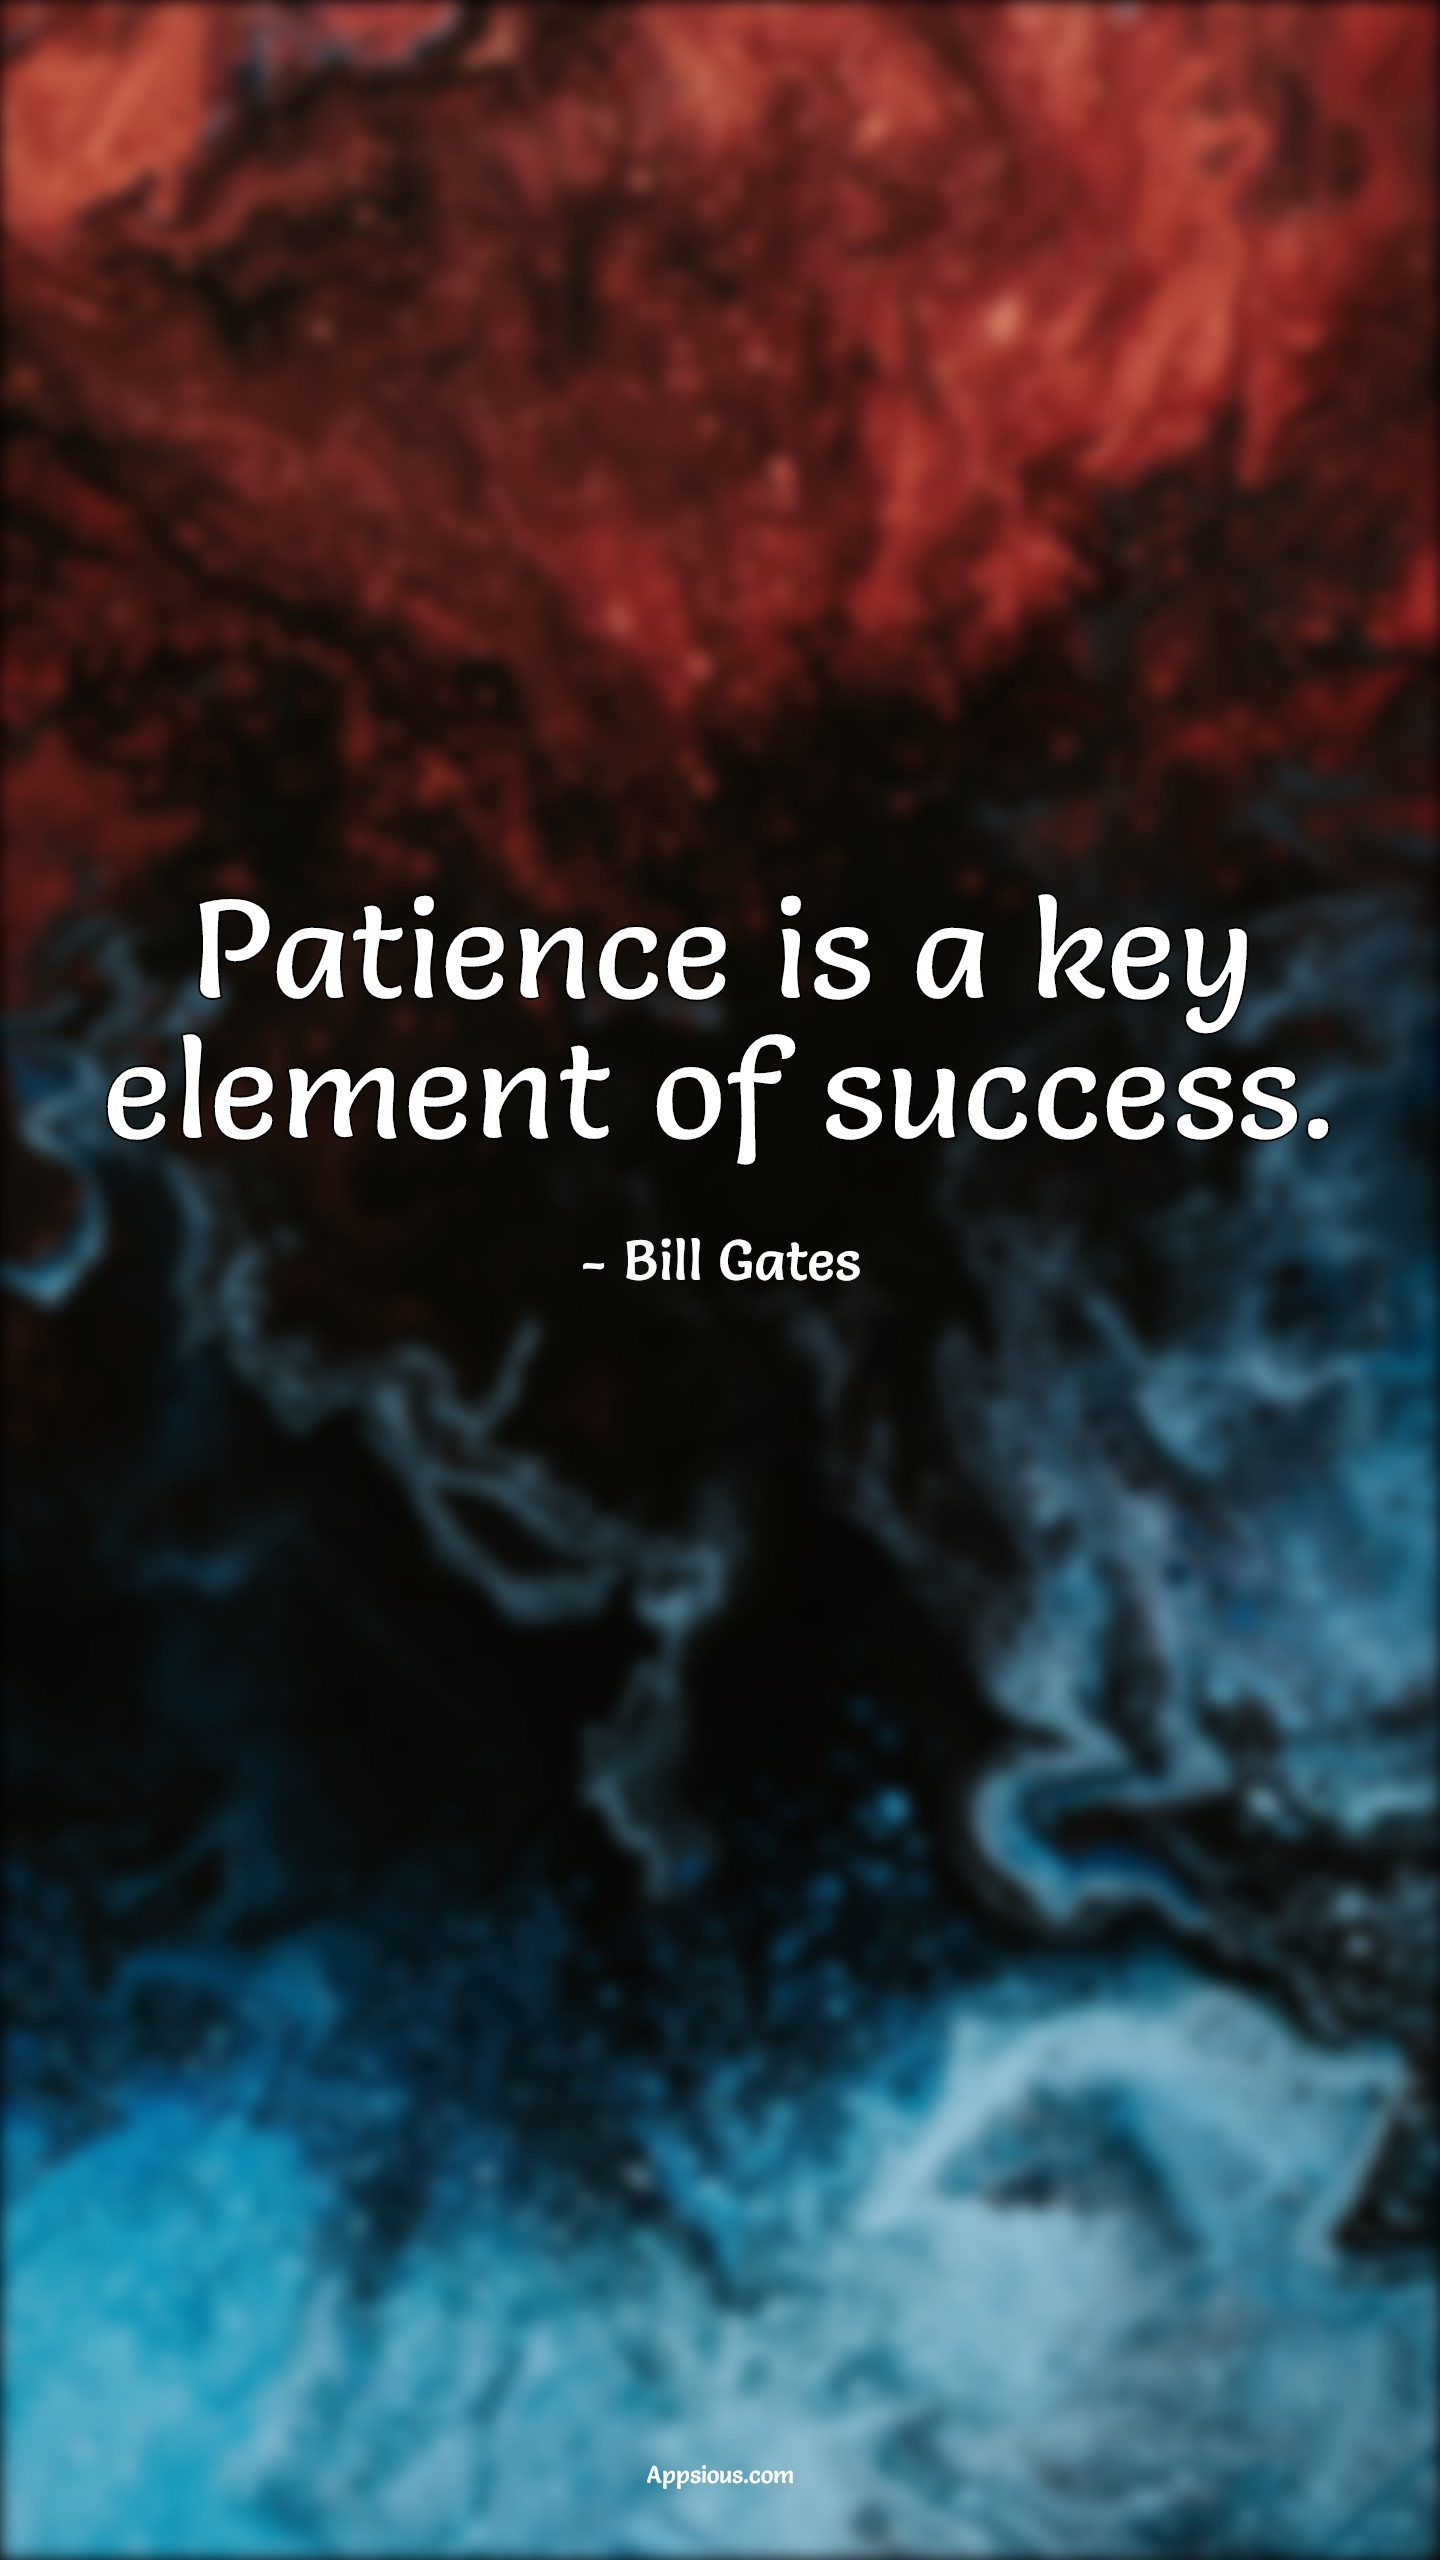 Patience is a key element of success.